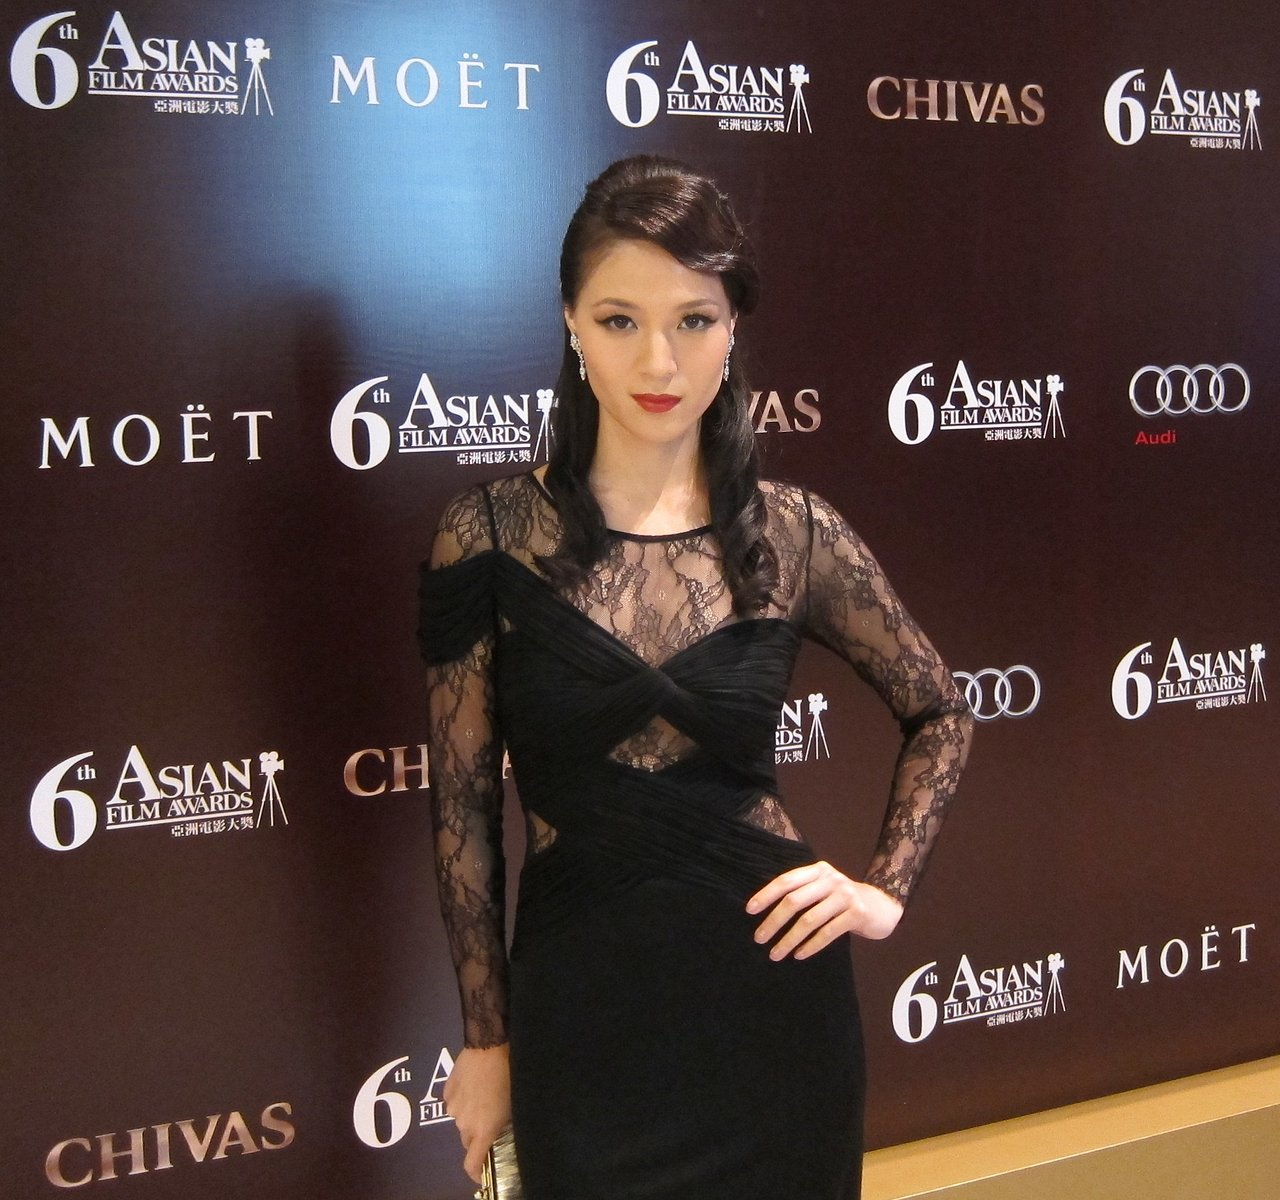 AsianFilmAwards-GraceHuang